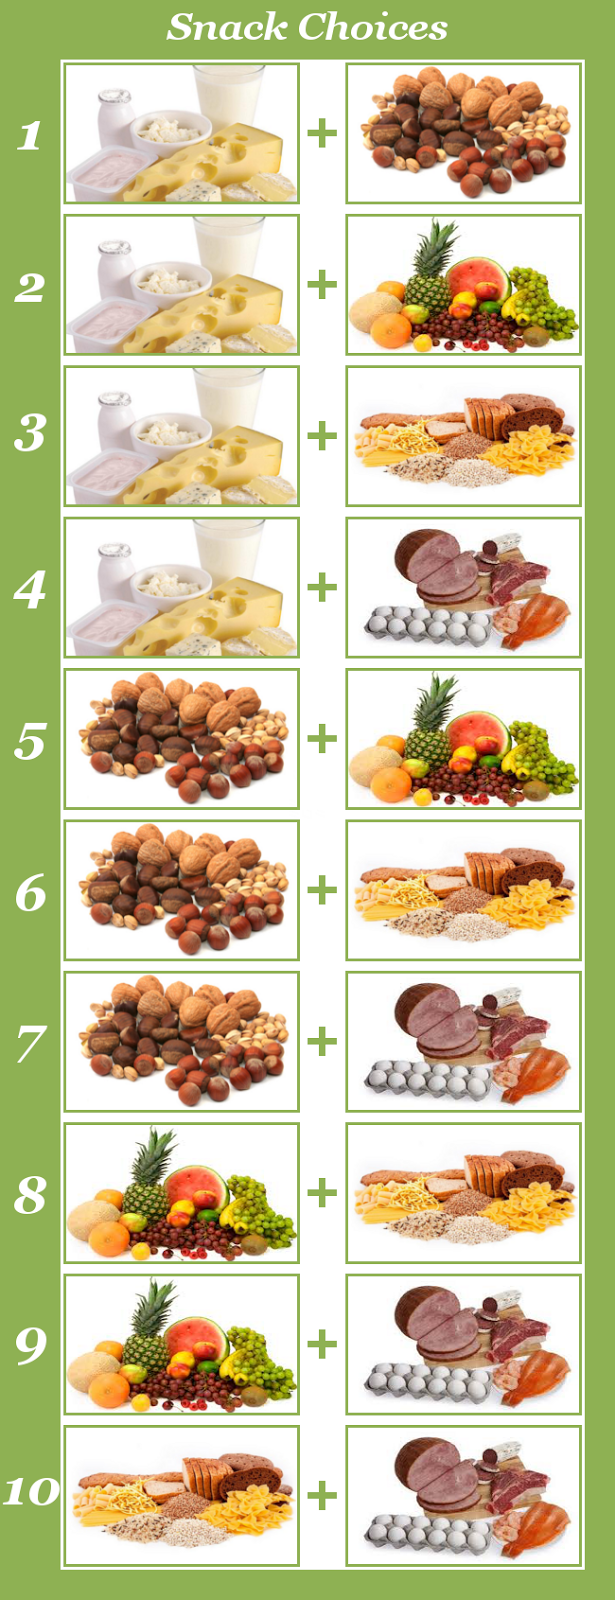 A Simple guide to help you and your kids choose healthy snacks.